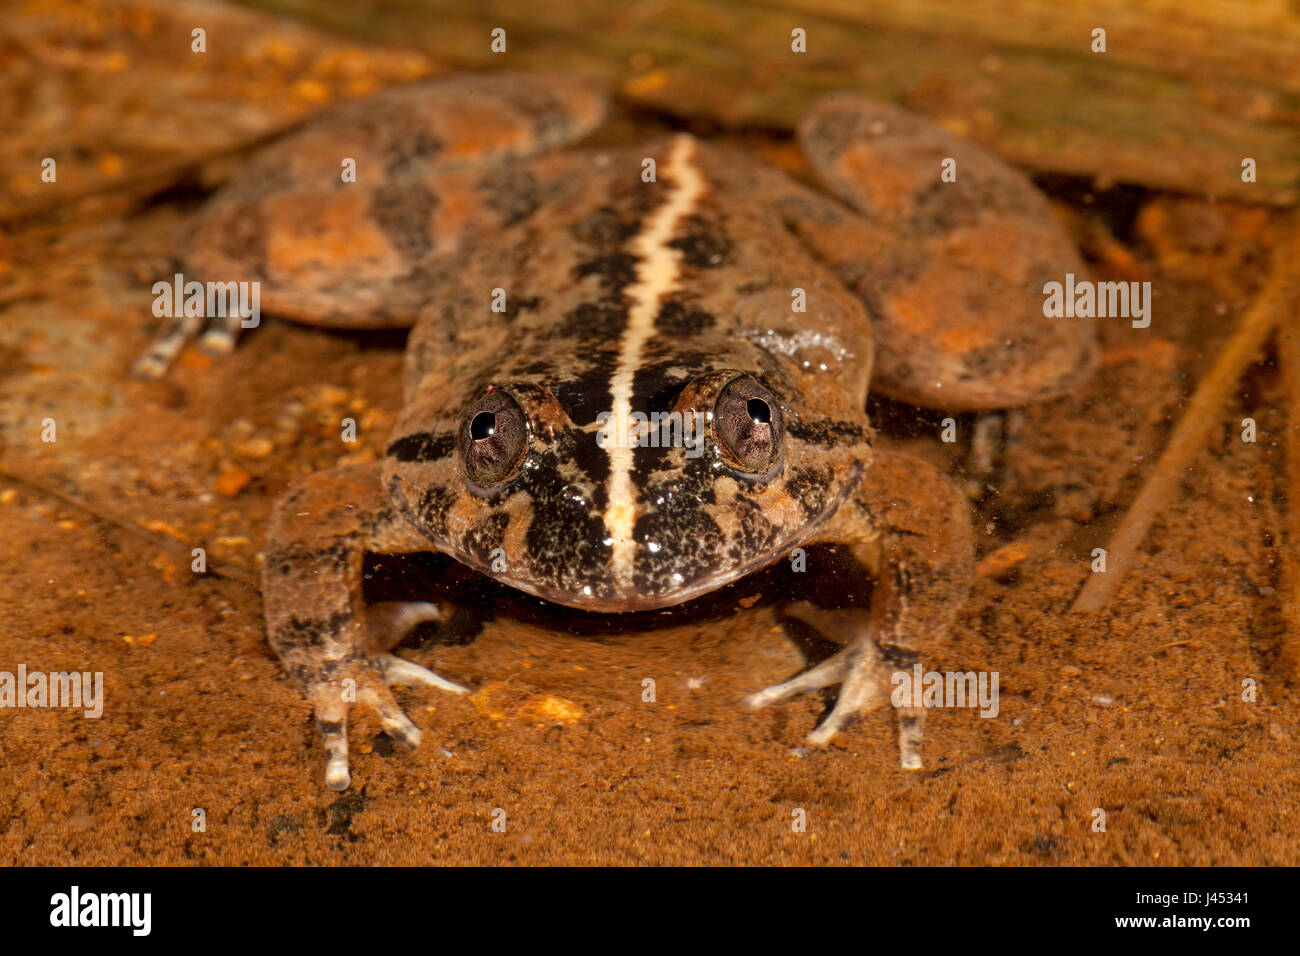 photo of a Kuhl's creek frog - Stock Image